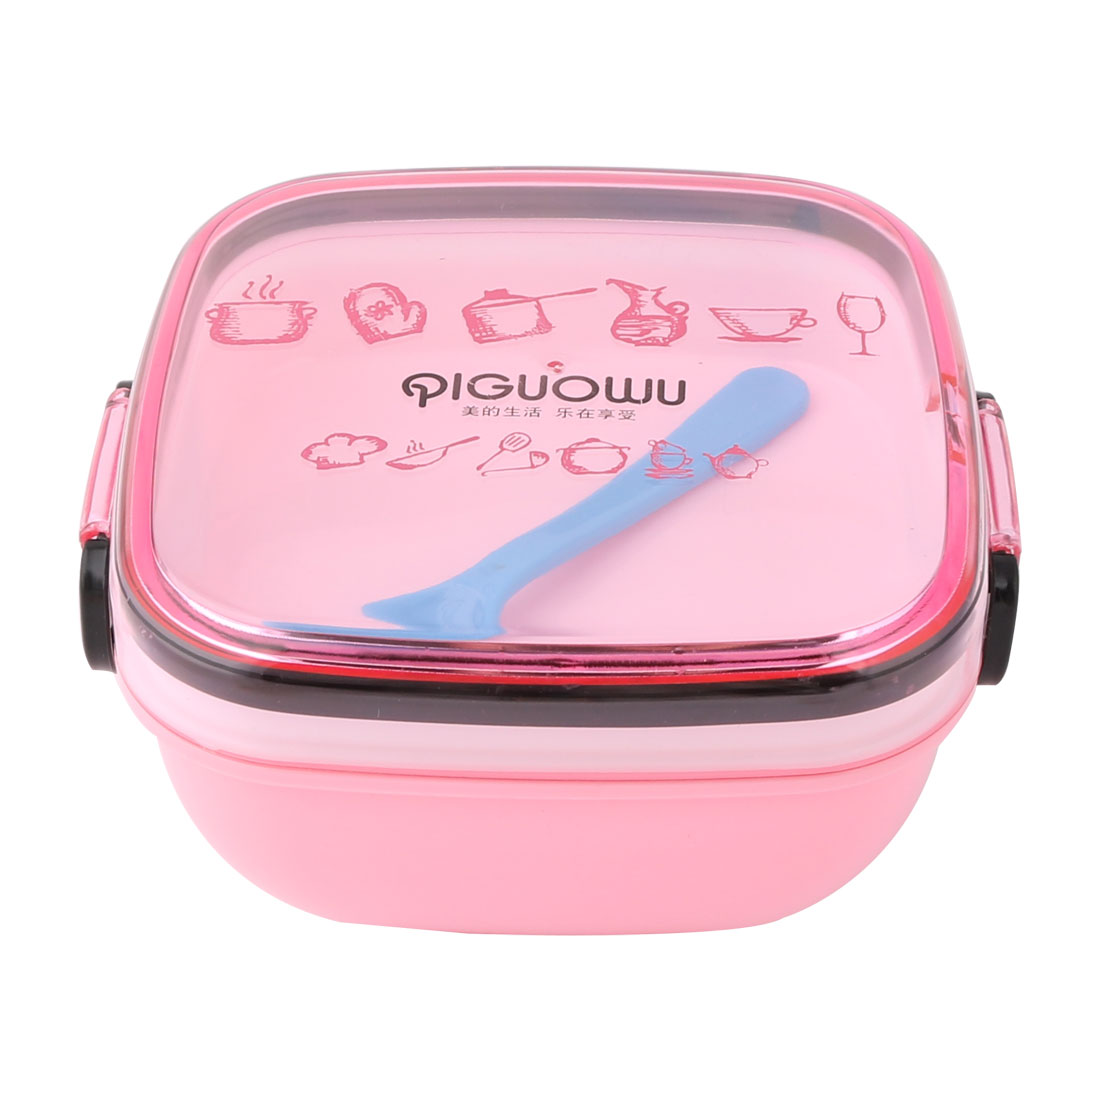 Kitchen Outdoor Travel Plastic Square Shaped Food Container Lunch Box Case Pink